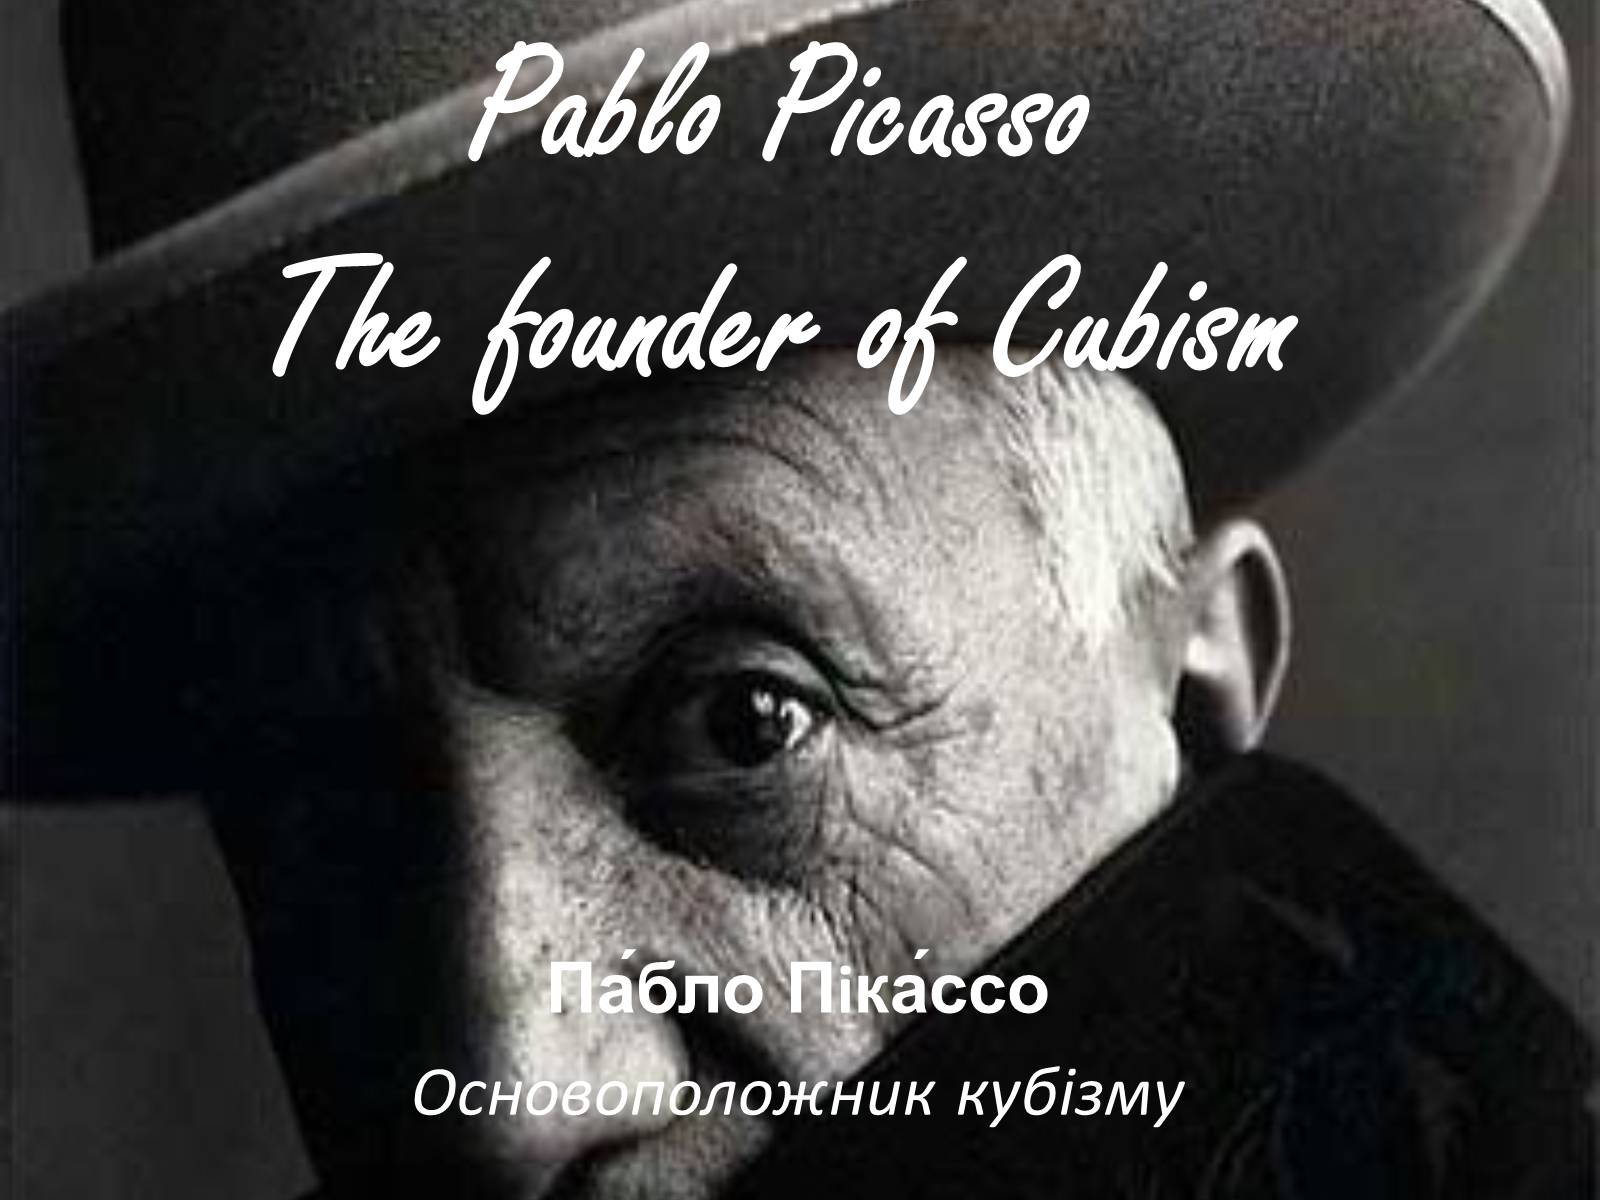 Презентація на тему «Pablo Picasso The founder of Cubism» - Слайд #1